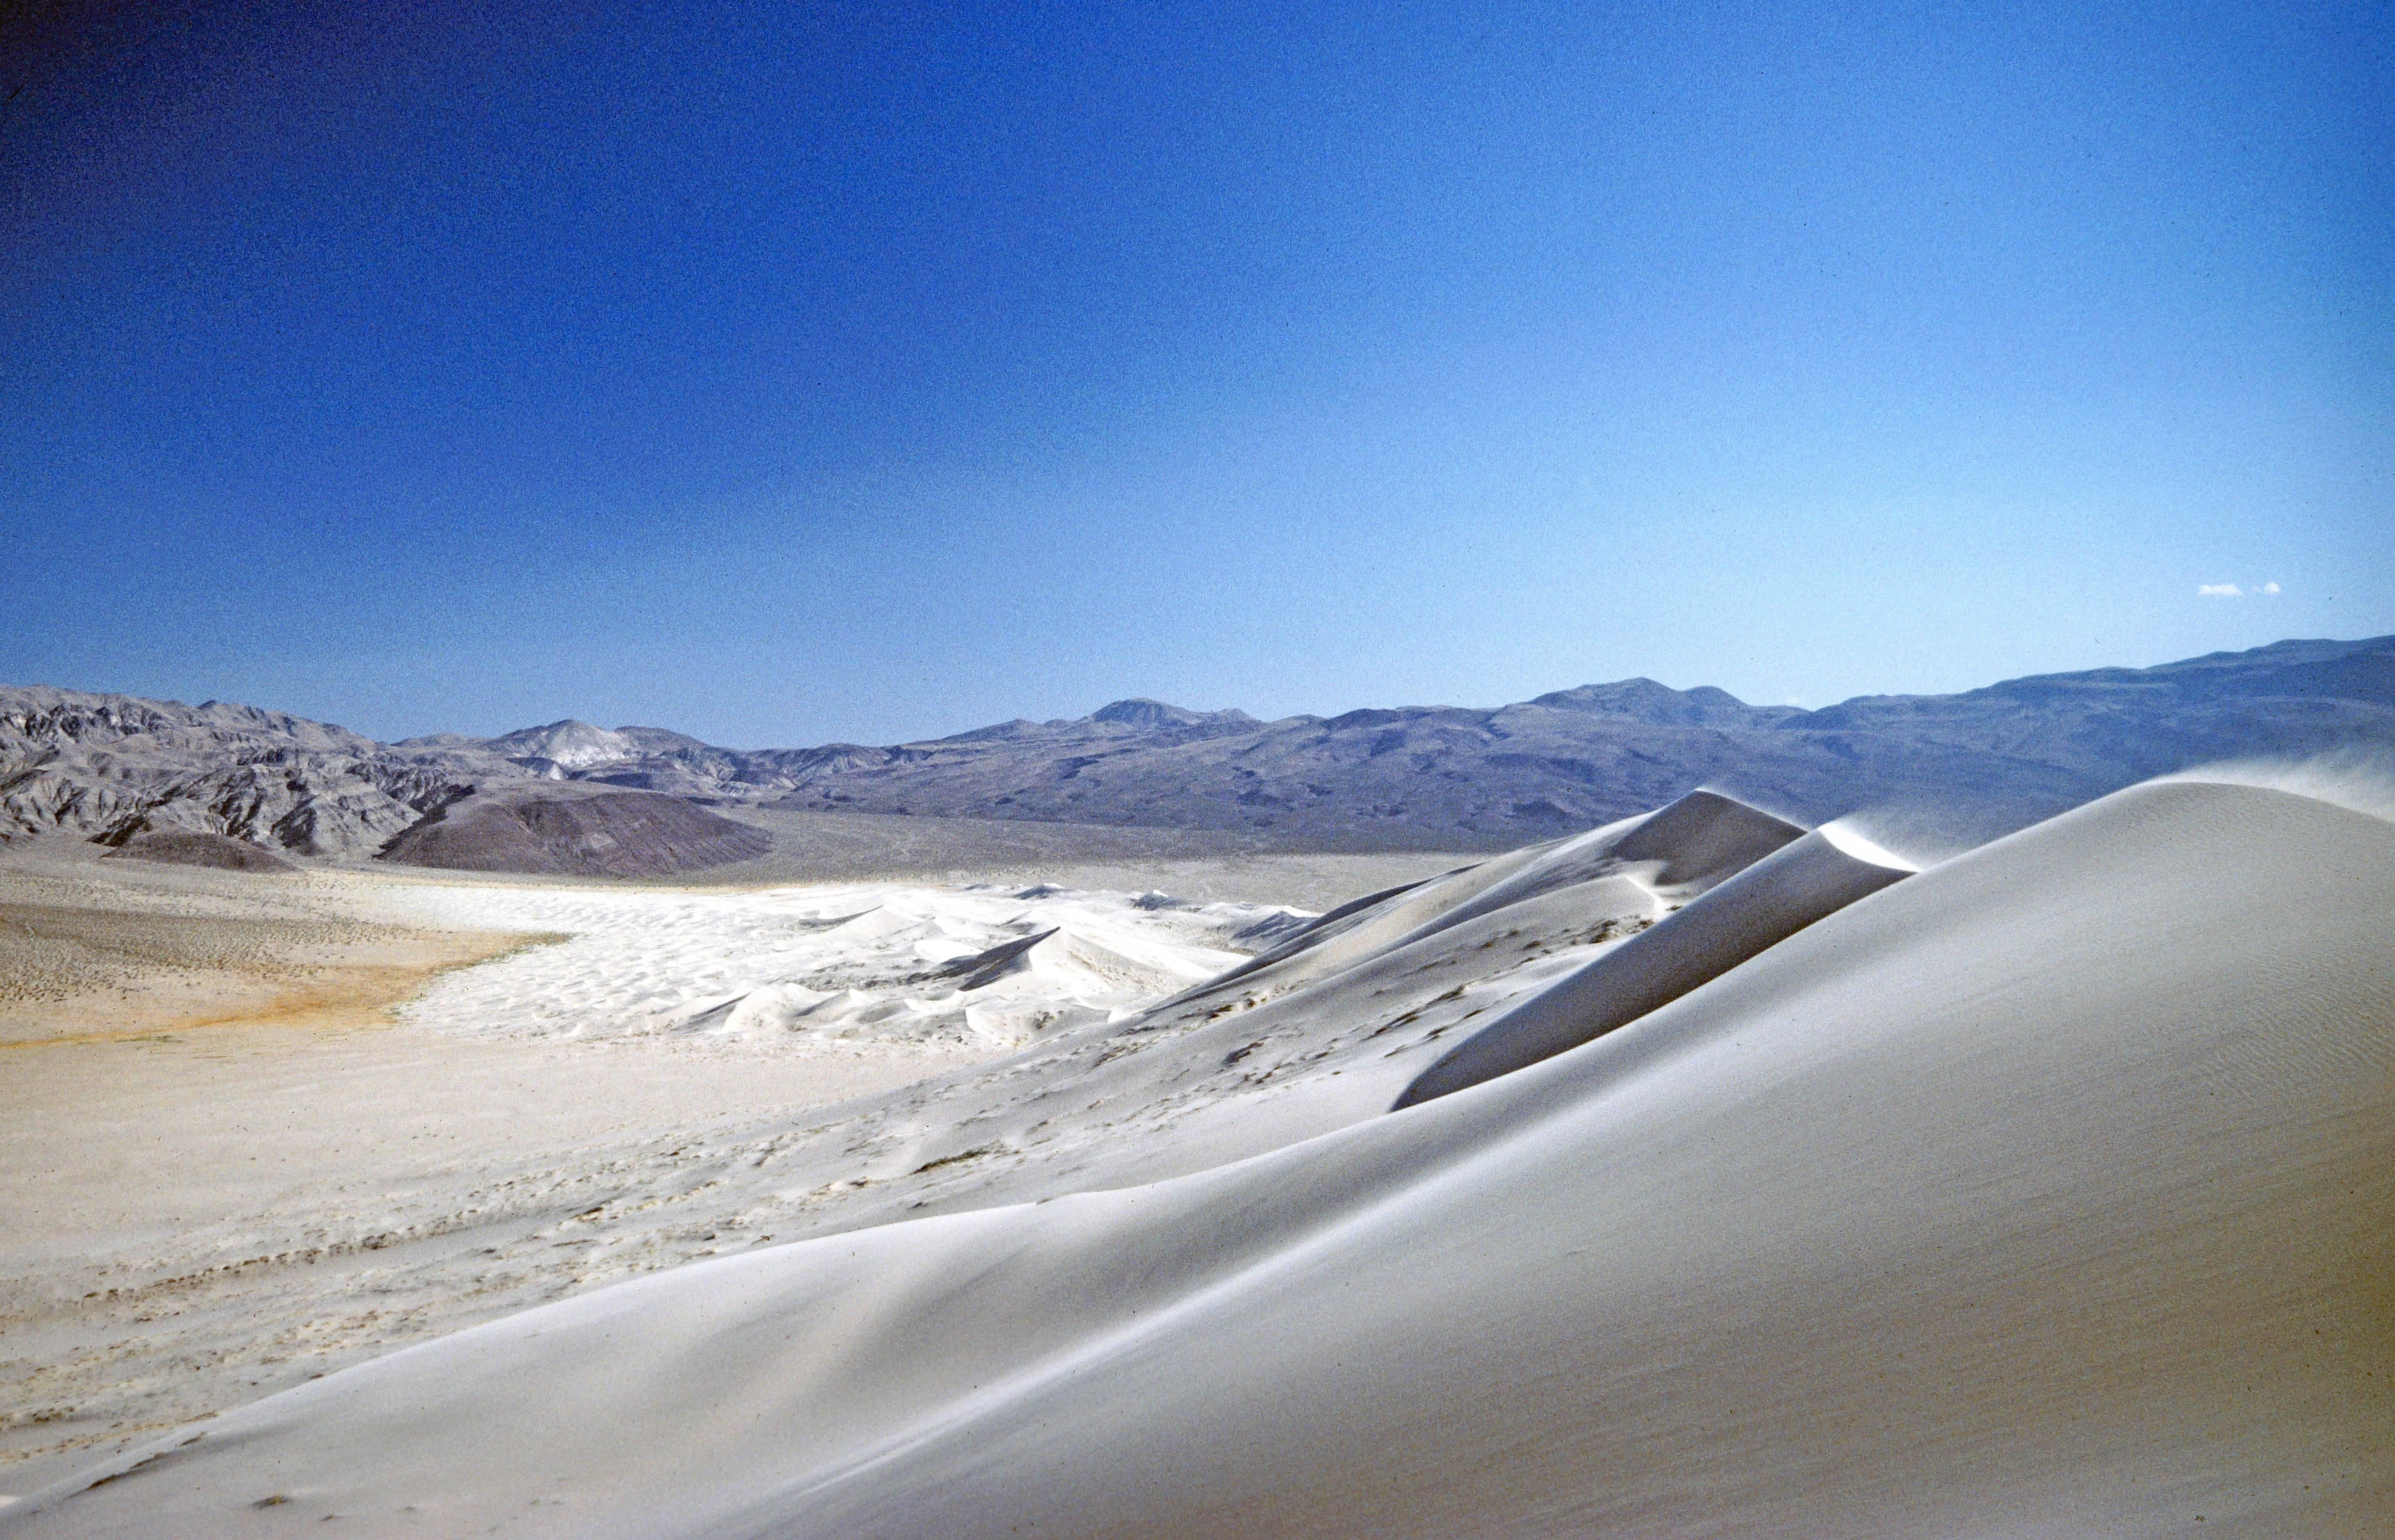 What is it like to walk in the desert? - Quora